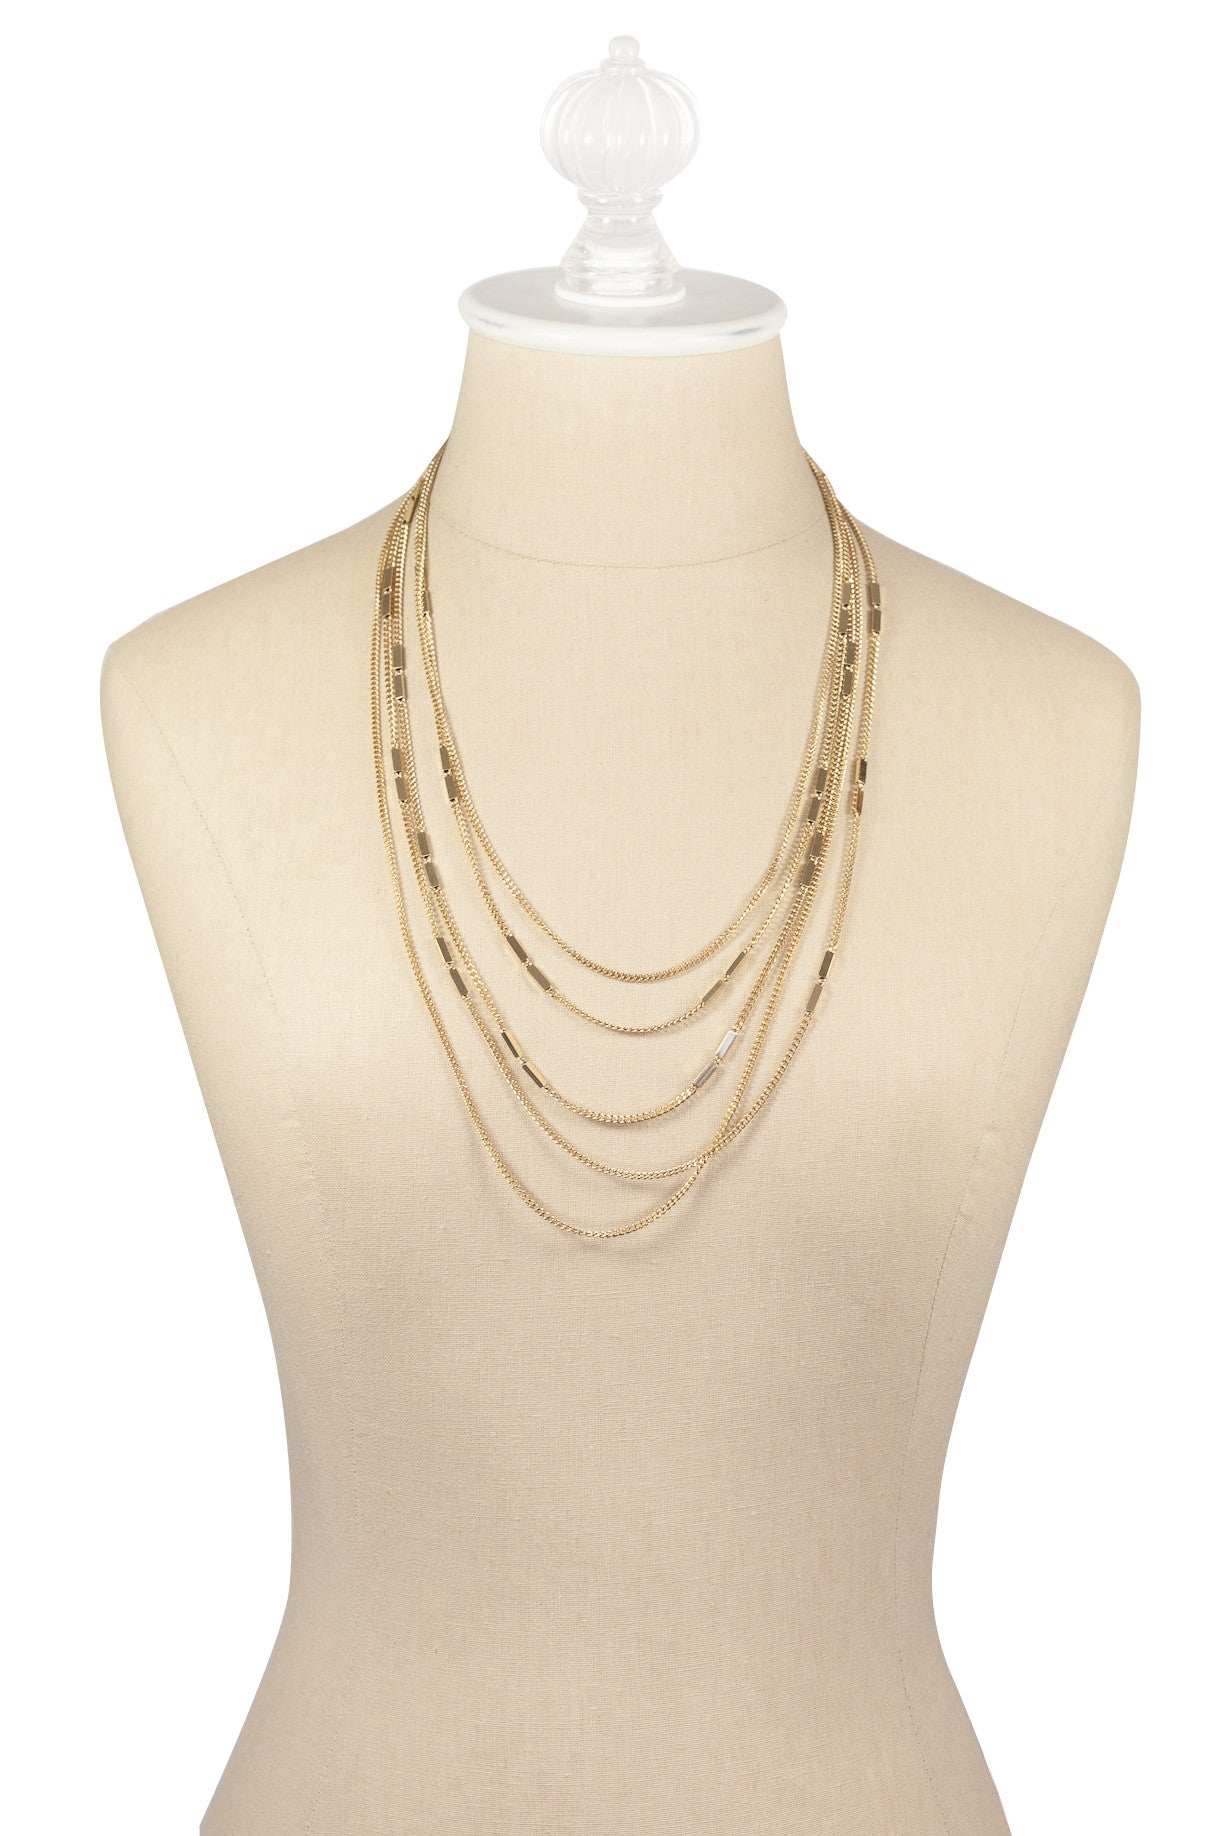 70's__Monet__Dainty Multi Chain Necklace